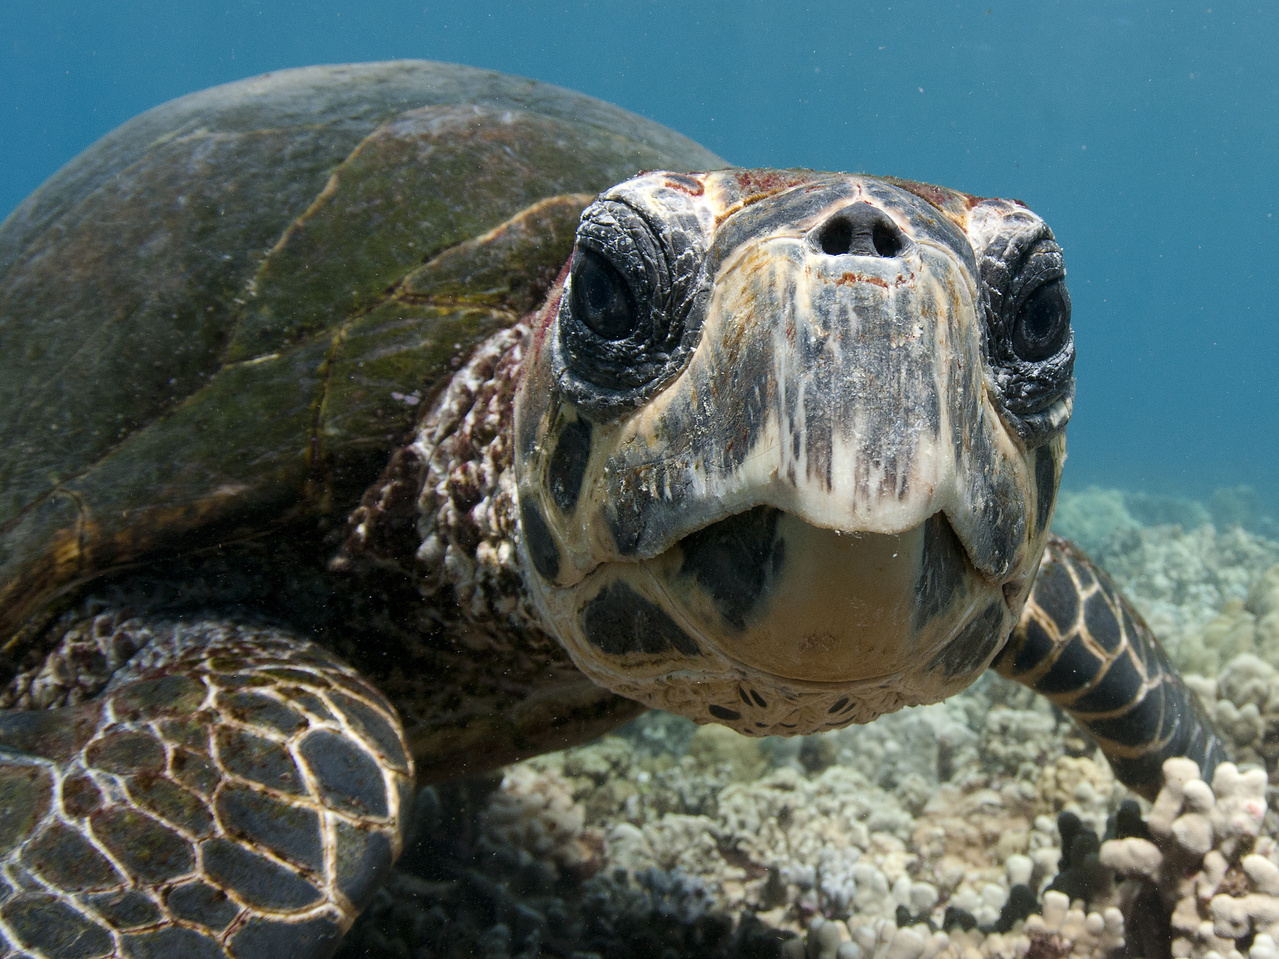 3035x2276-Hawksbill face-Don McLeish.jpg